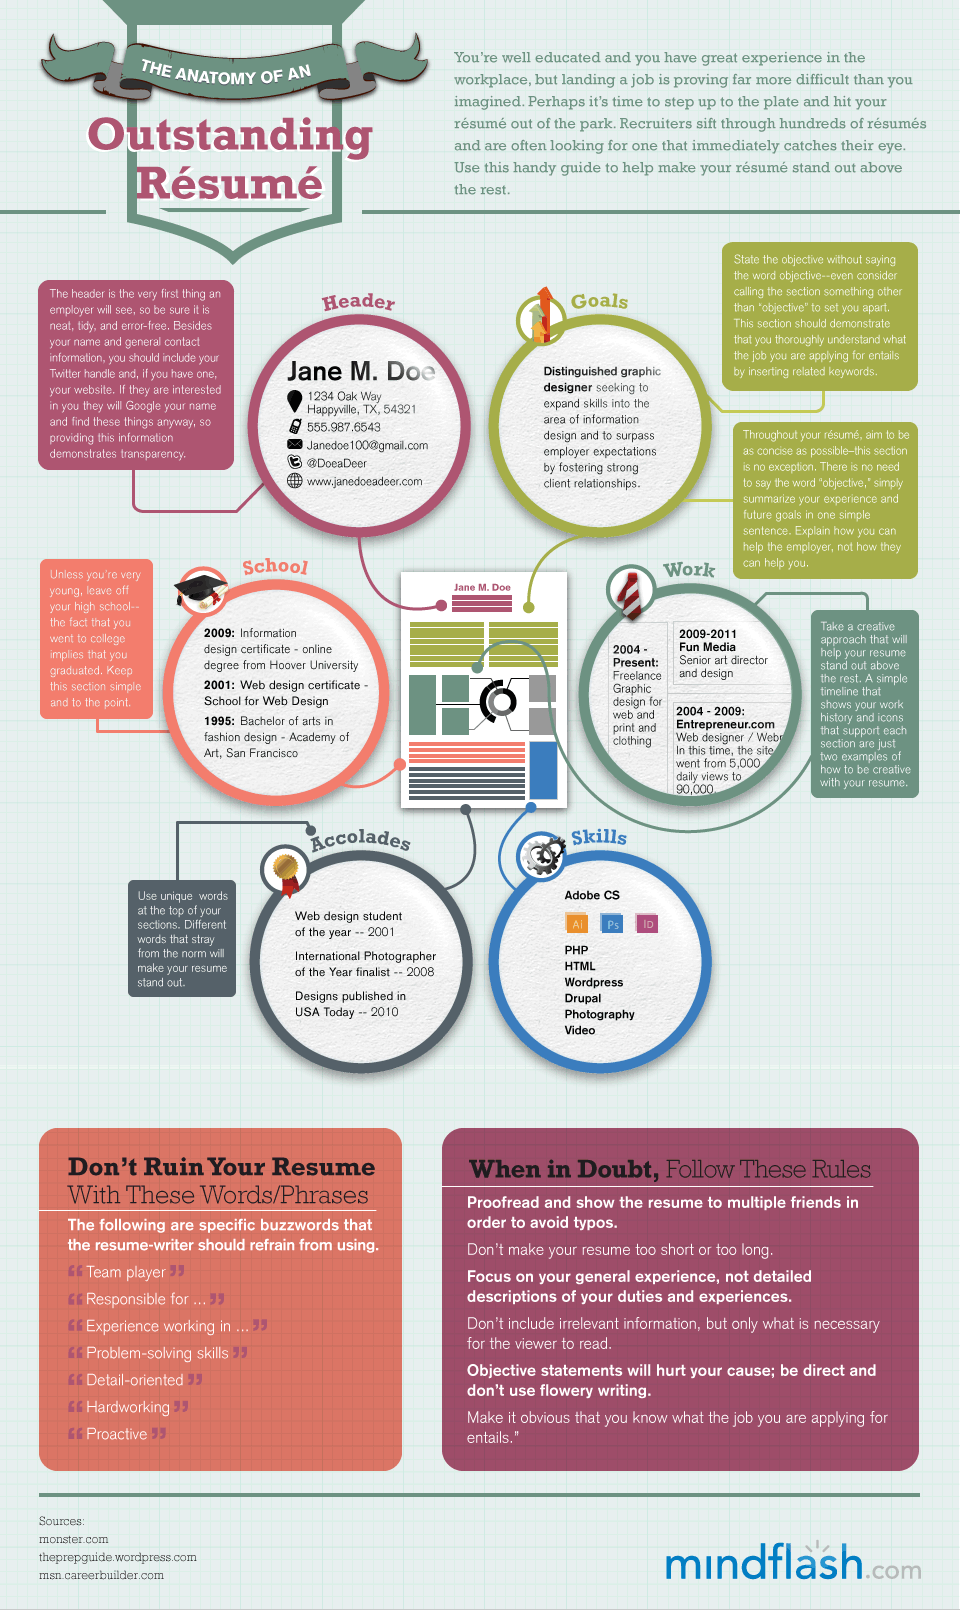 Anatomy Of An Outstanding Resume [Infographic] | Pinterest | Anatomy ...